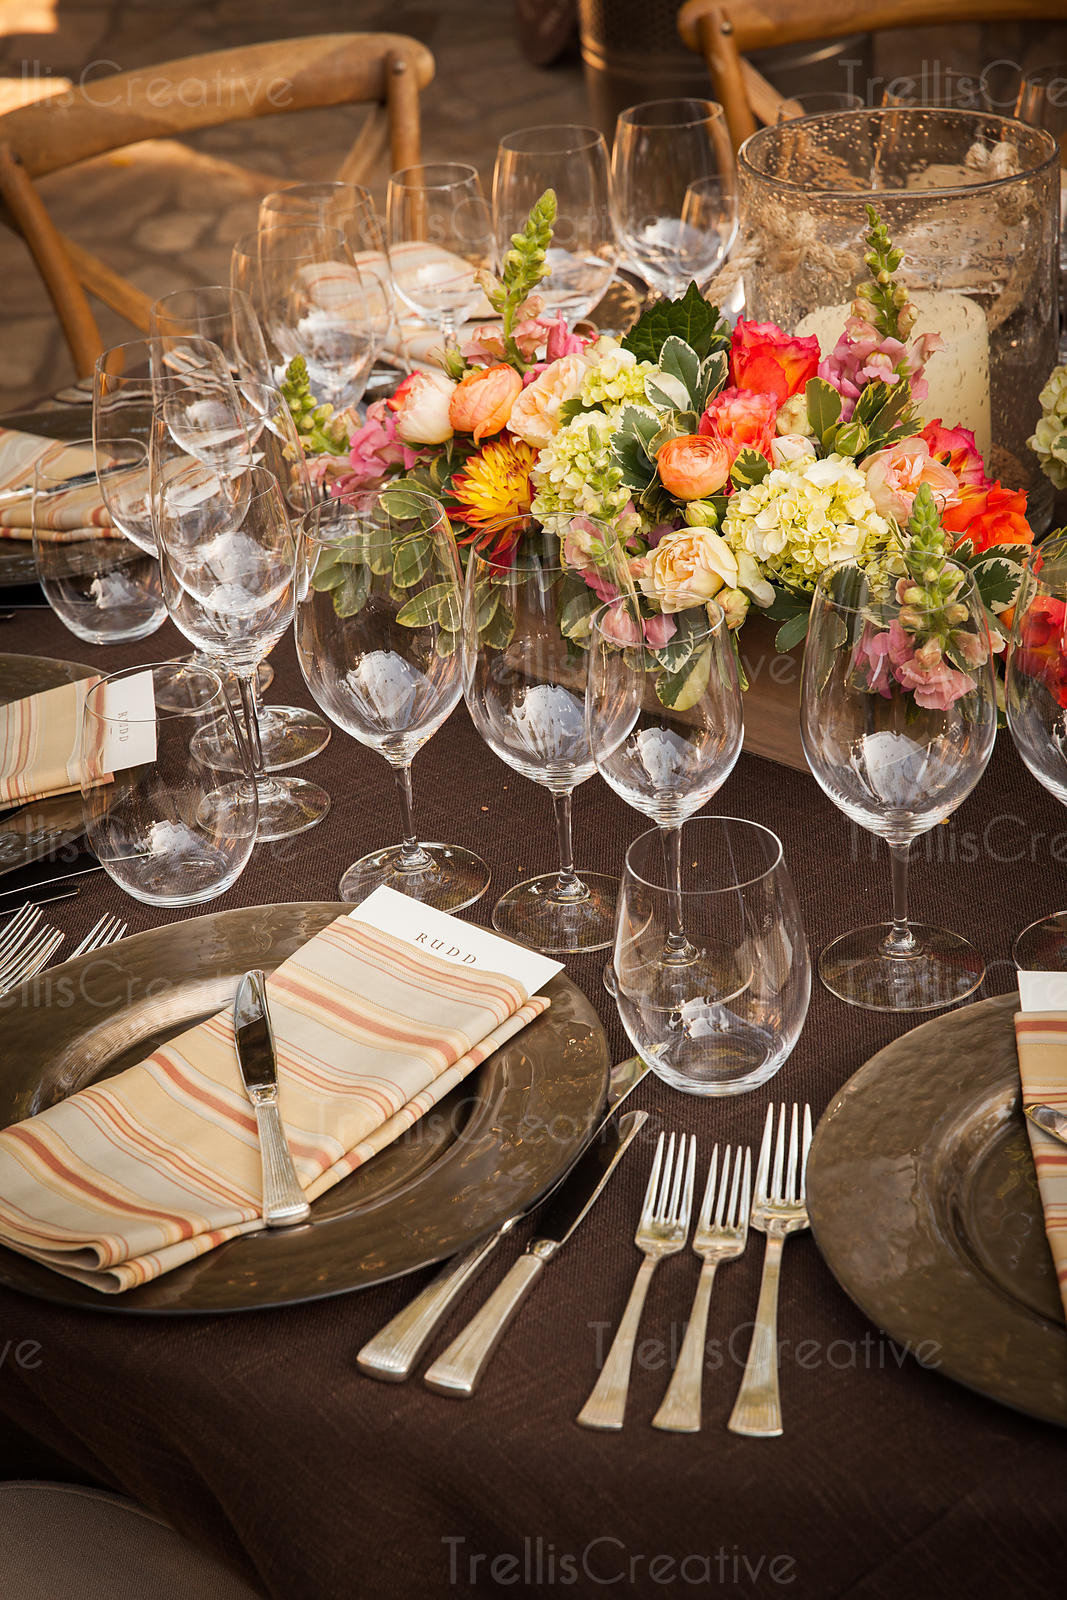 An elegant table setting with wine glasses and flowers